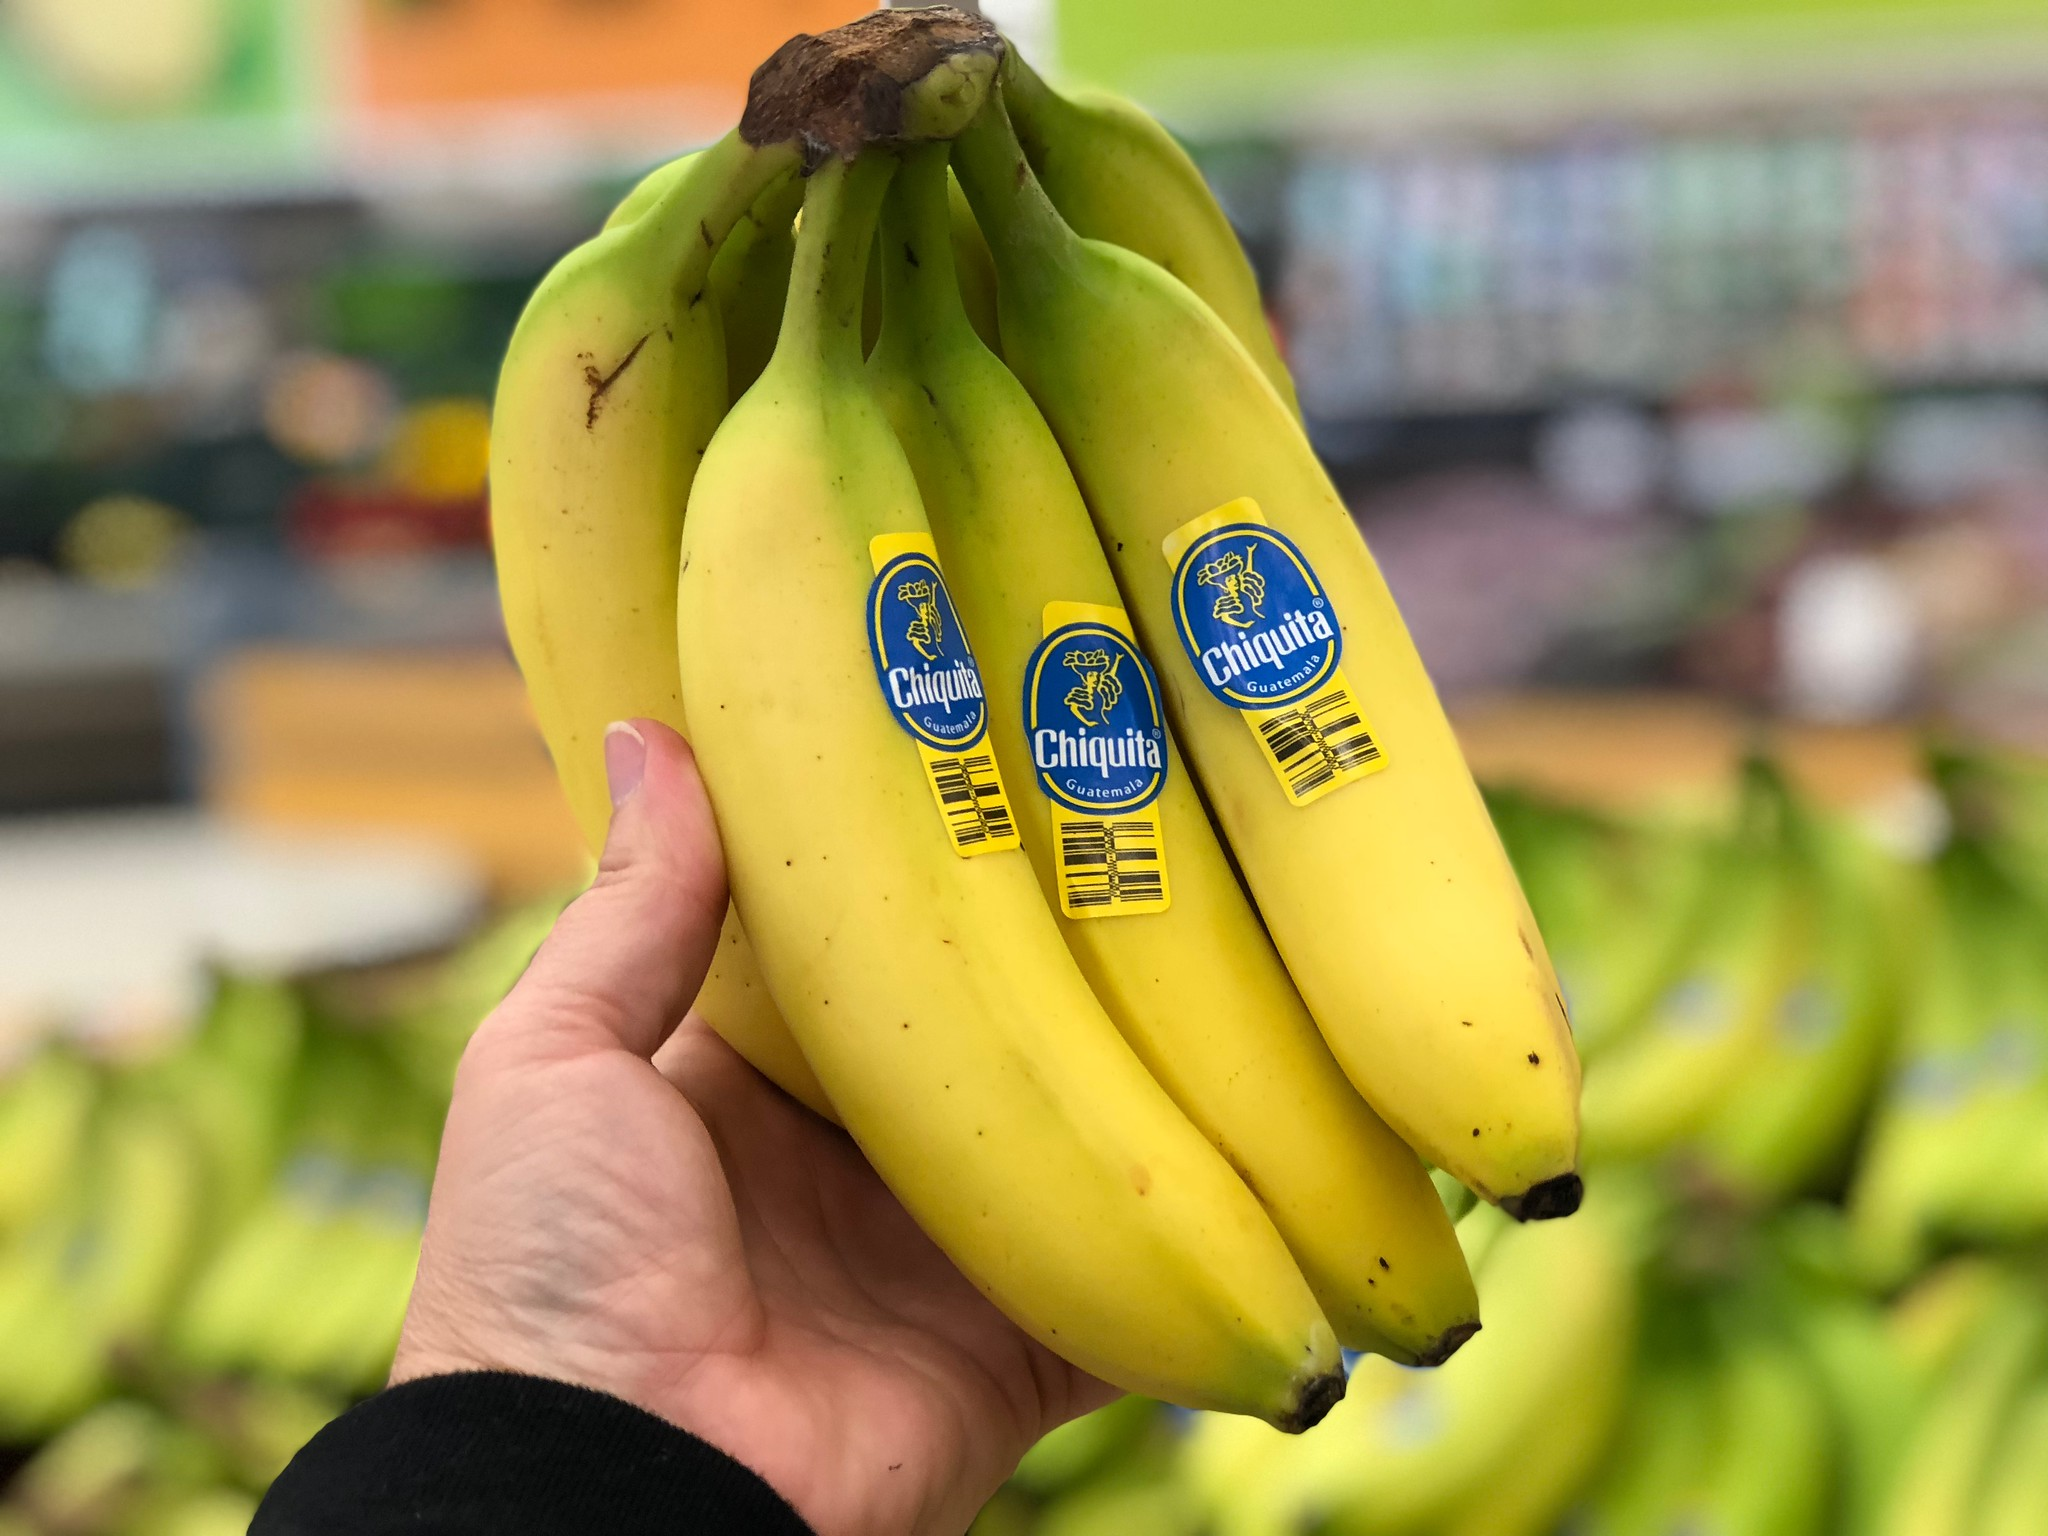 shop and earn rewards with these free mobile apps — bananas